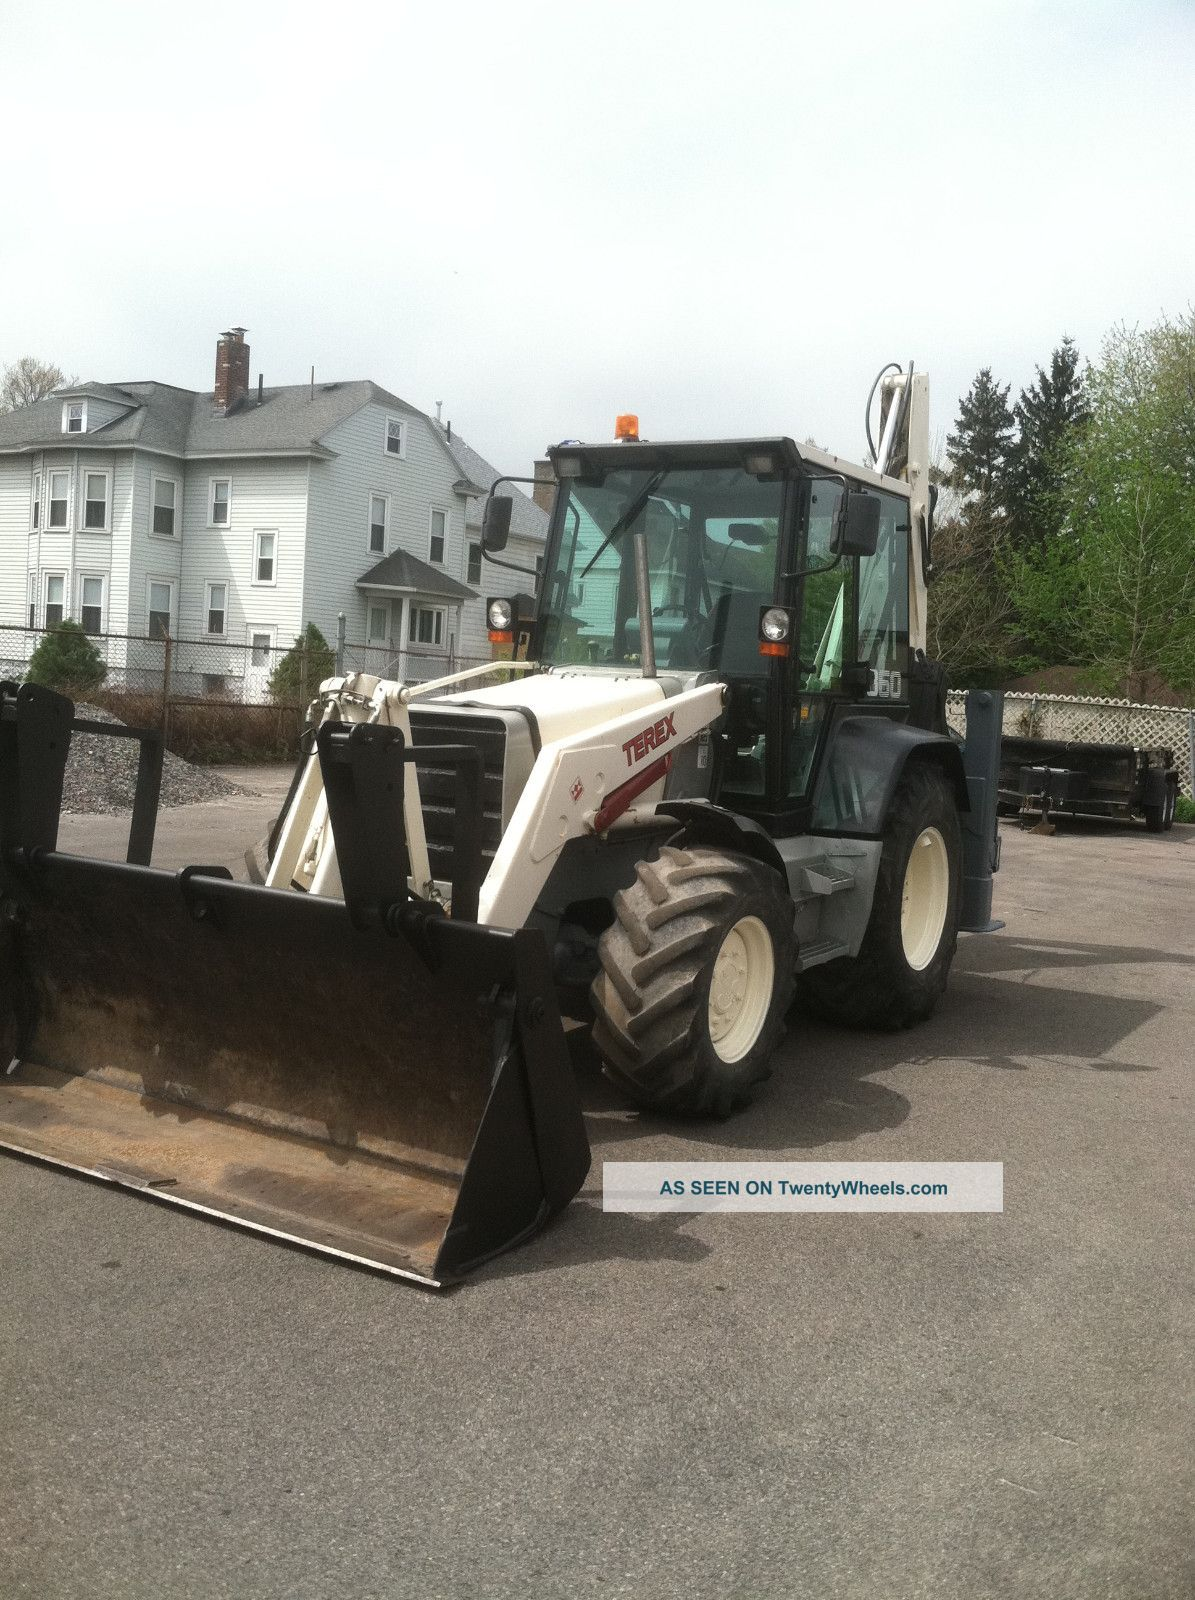 1999 Terex 860 Backhoe Backhoe Loaders photo